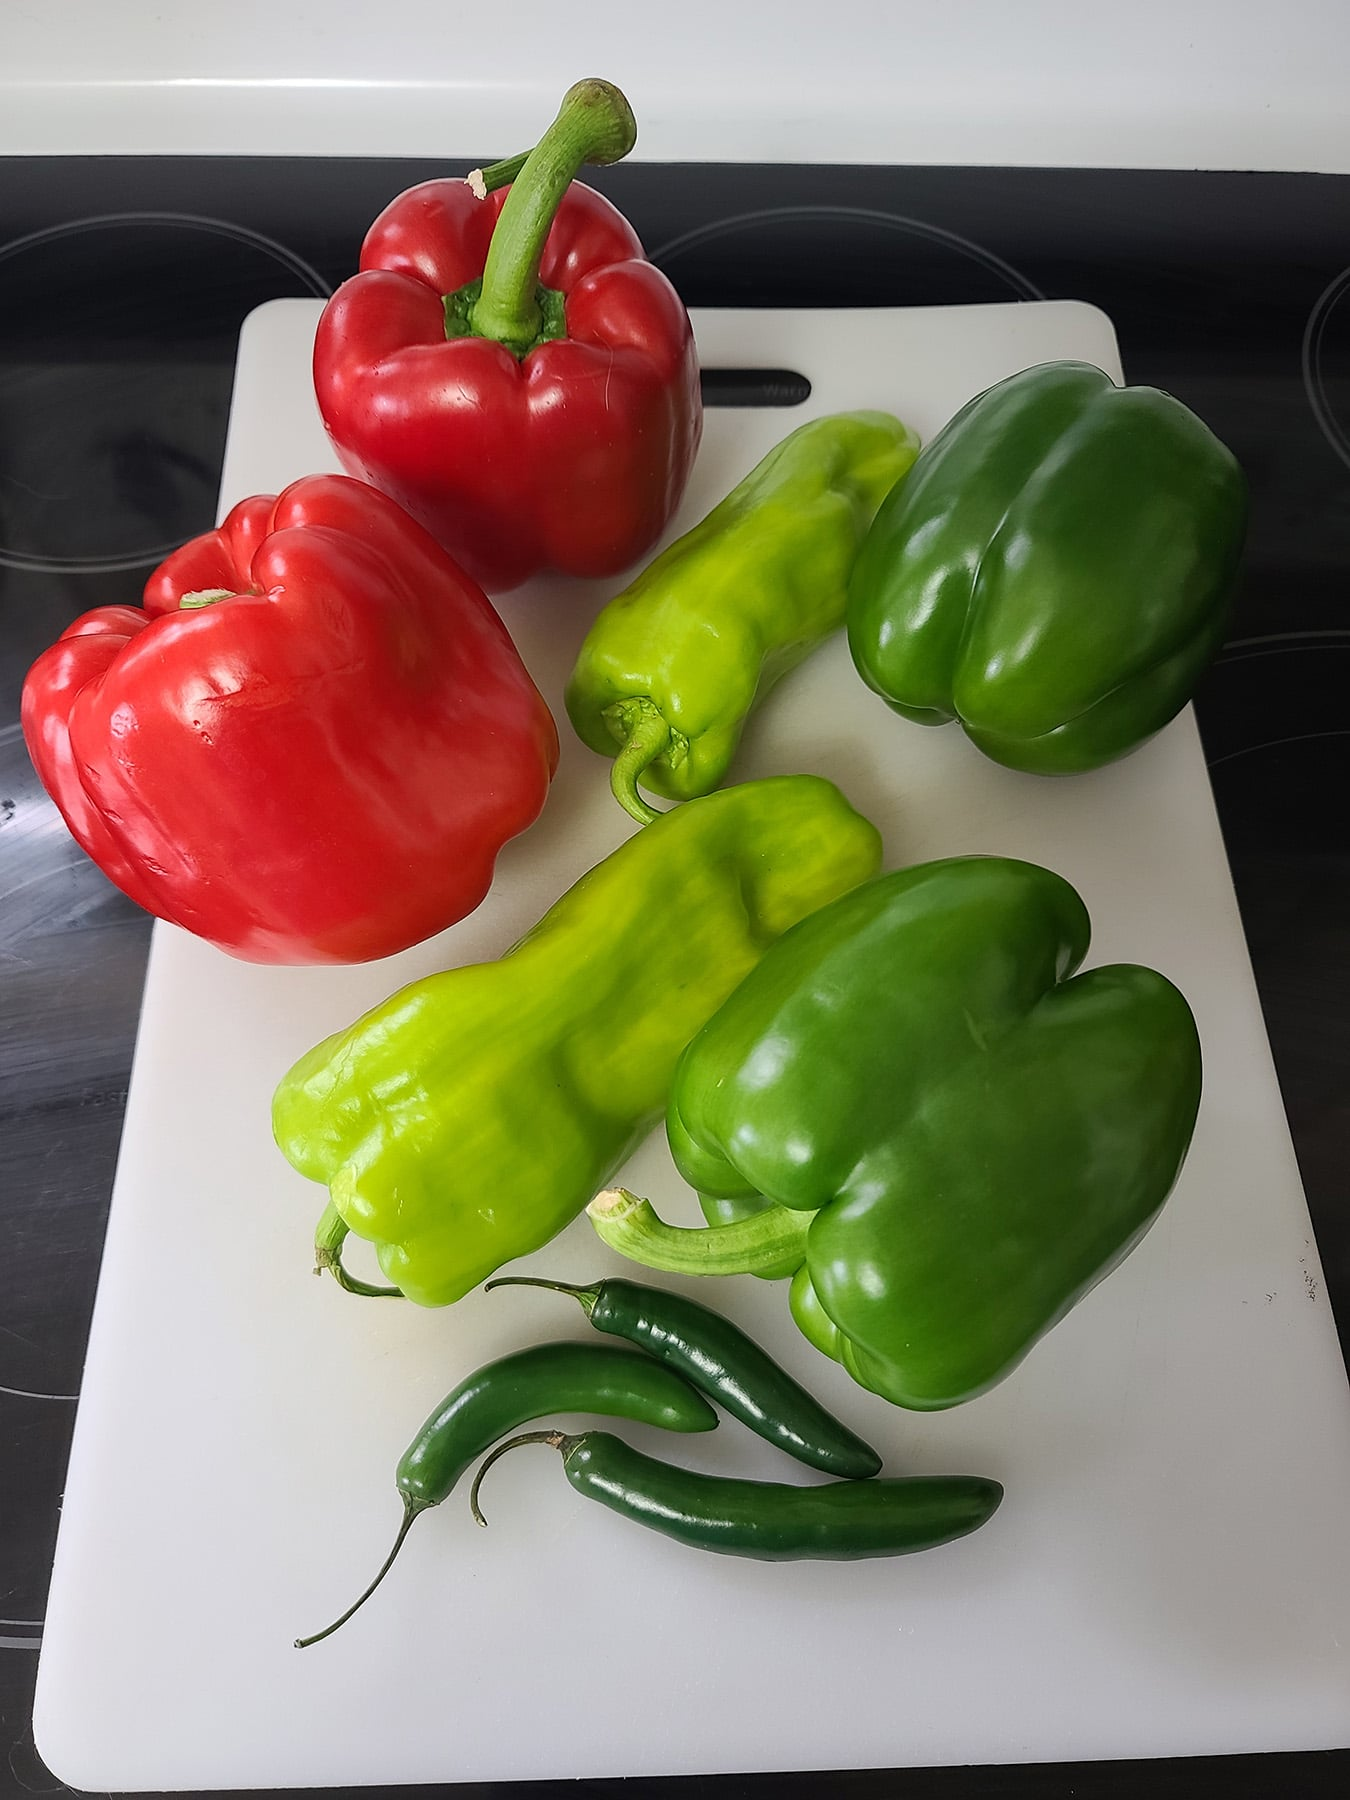 Several red and green peppers on a cutting board.